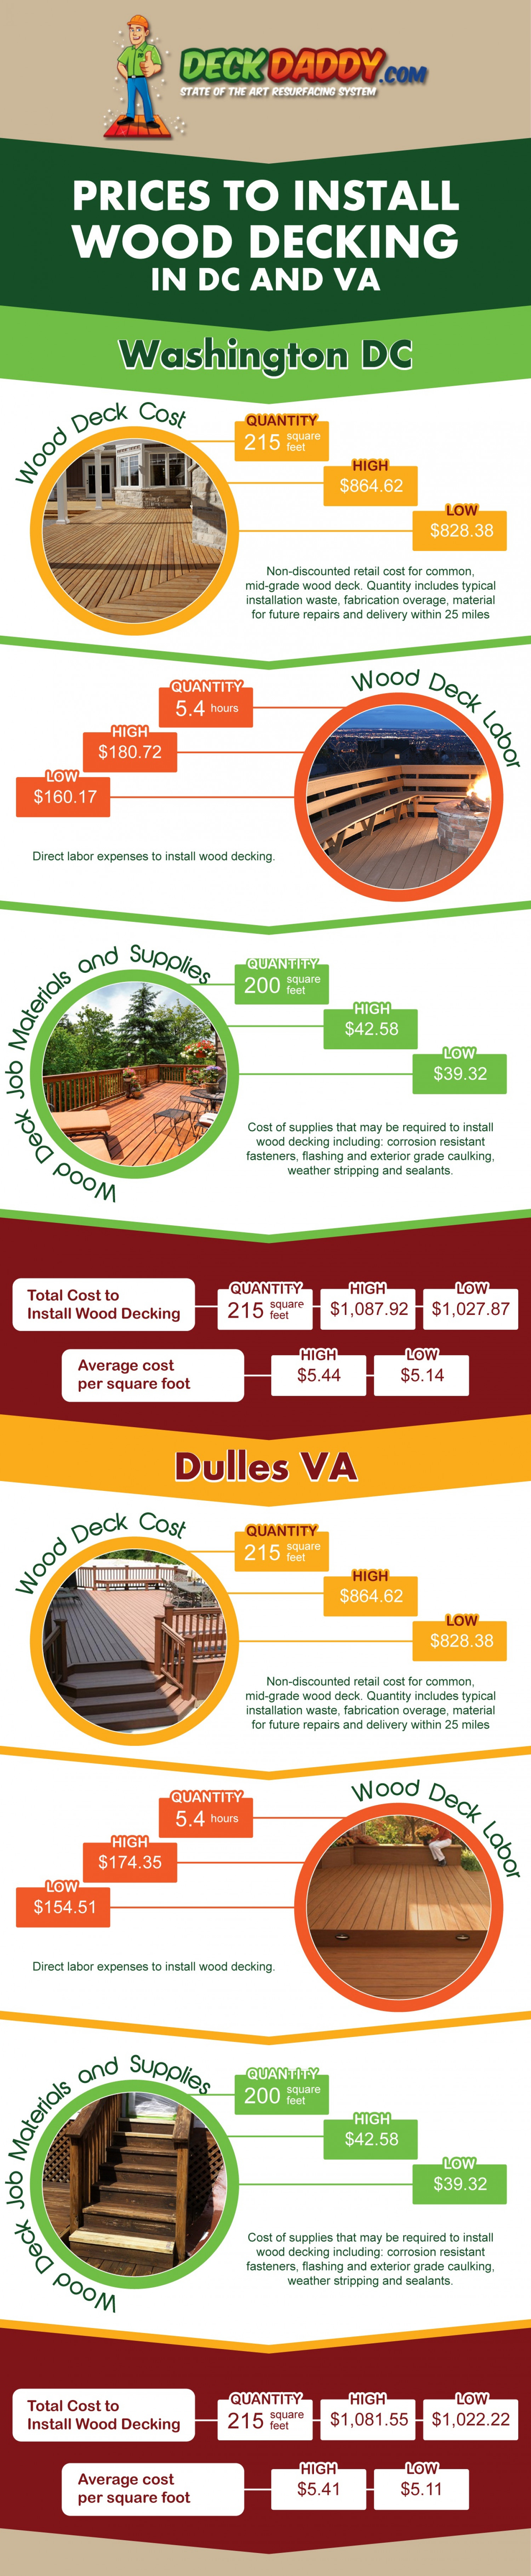 Prices to Install Wood Decking in DC and VA Infographic